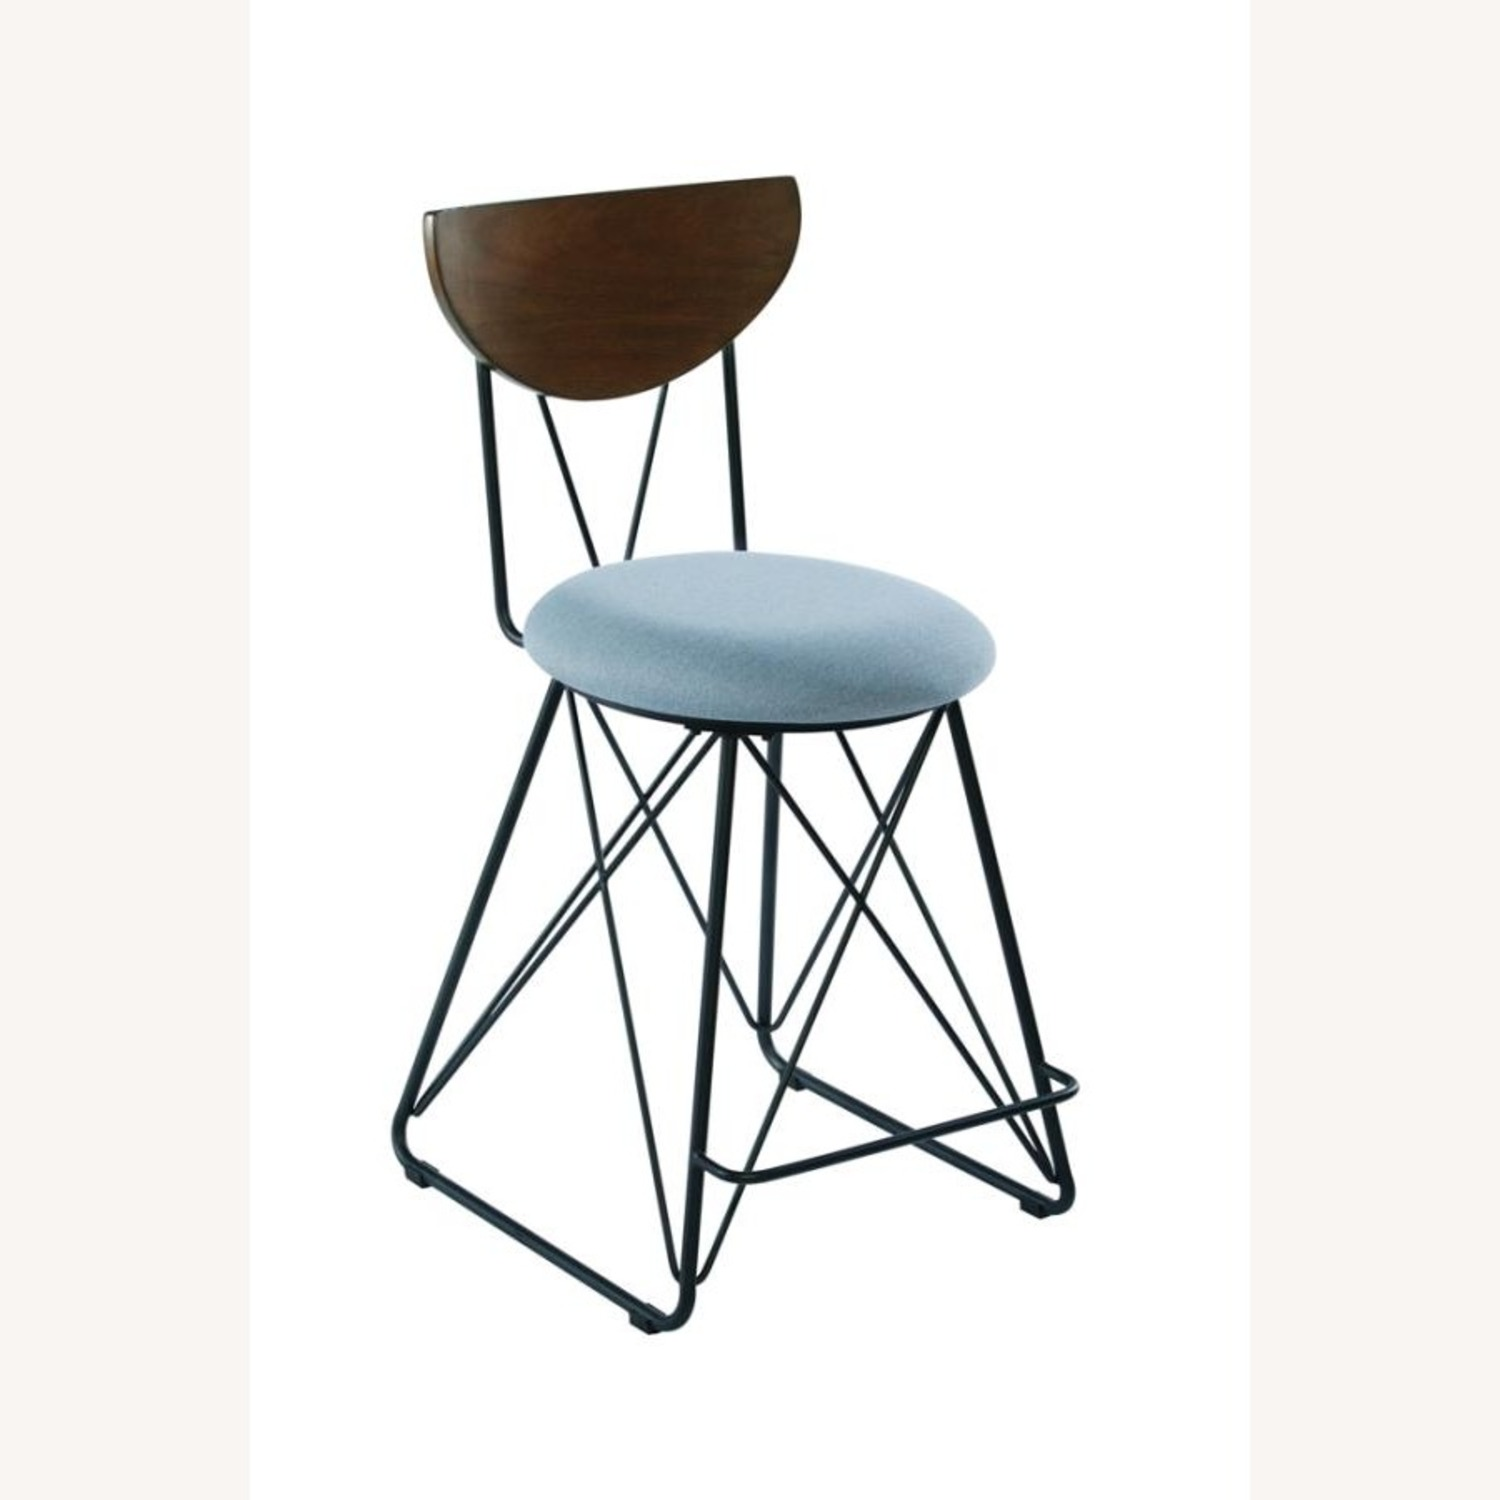 Modern Counter Height Stool In Blue Fabric - image-0